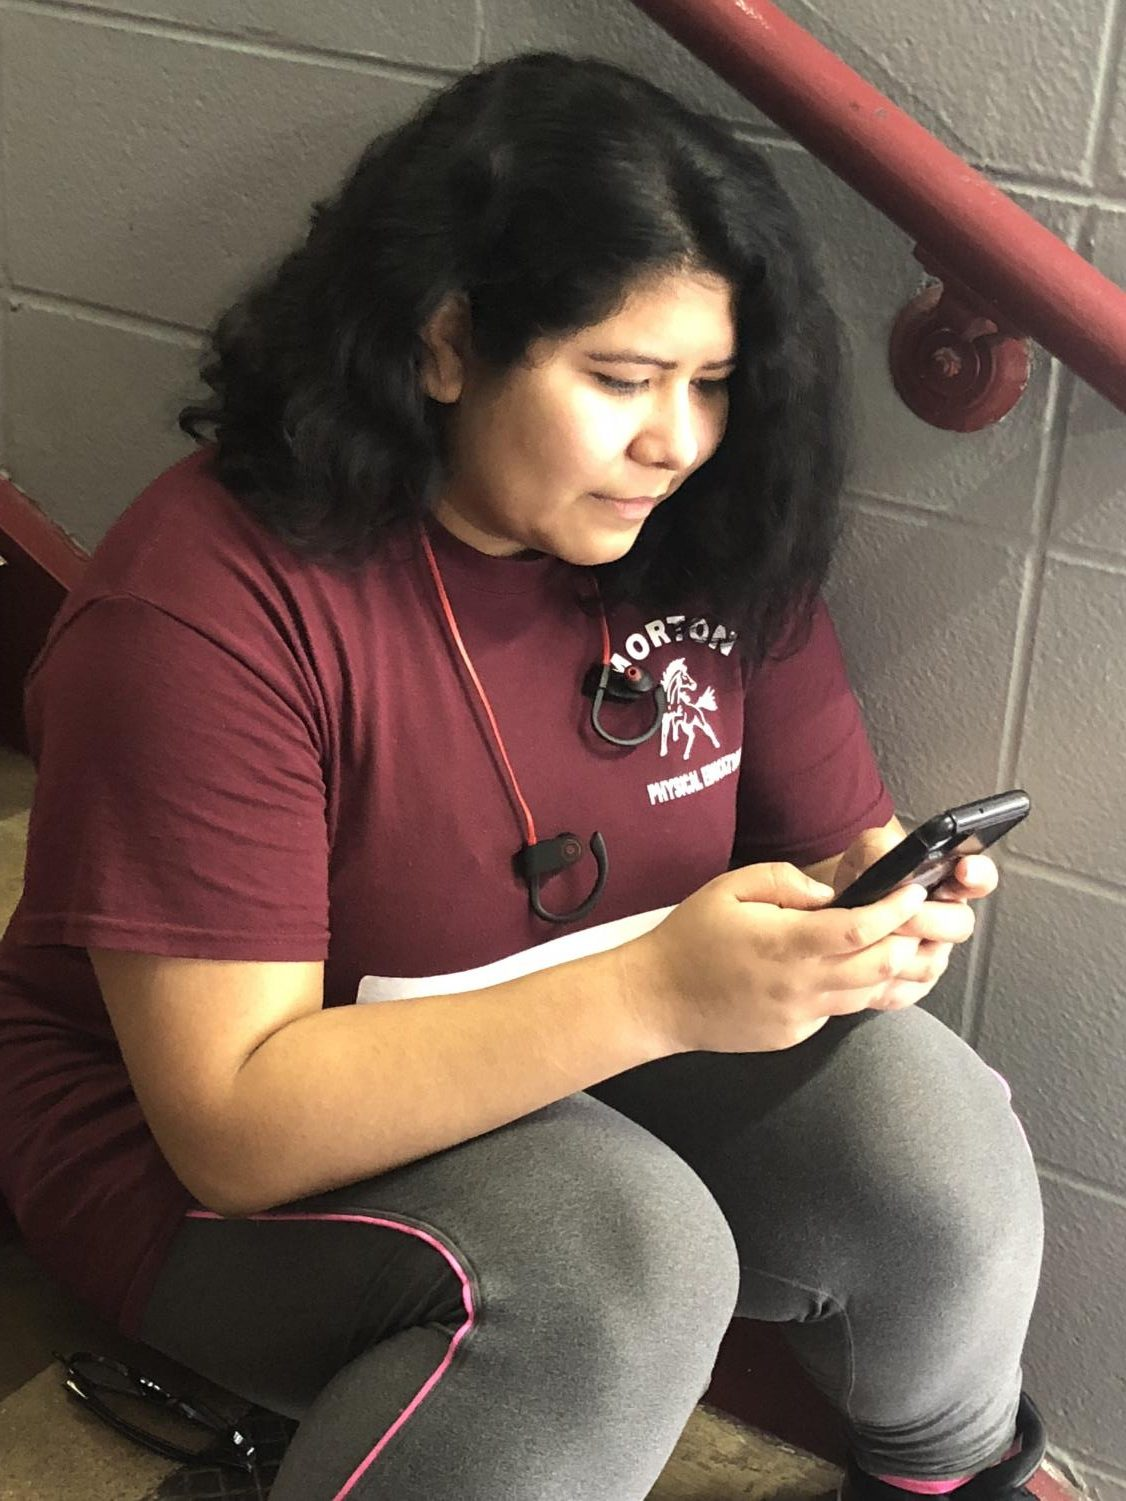 Angelica Vazquez applying for Subway on her phone.